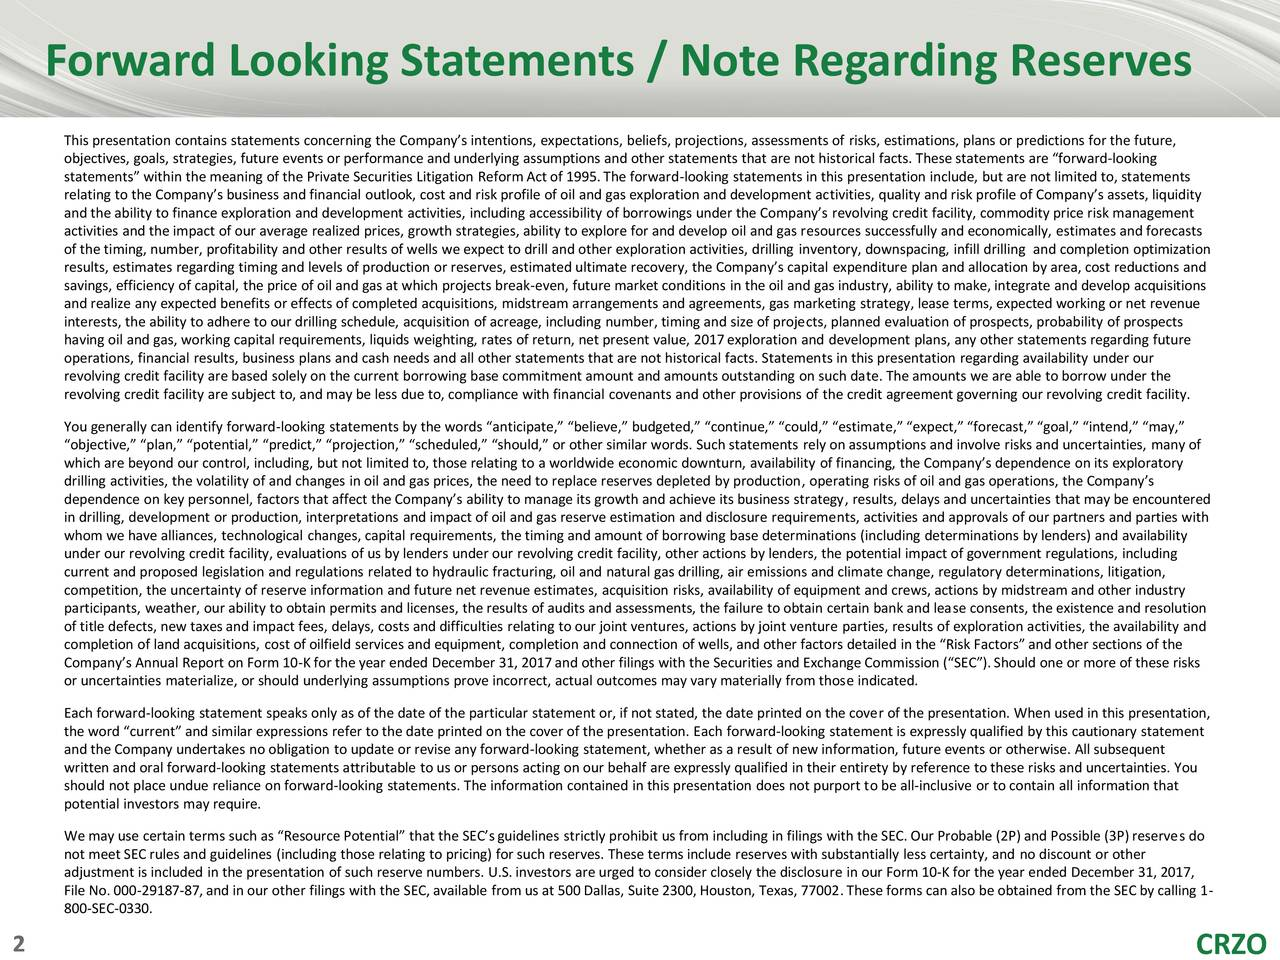 """This presentation contains statements concerning the Company's intentions, expectations, beliefs, projections, assessments of risks, estimations, plans or predictions for the future, objectives, goals, strategies, future events or performance and underlying assumptions and other statements that are not historical facts. These statements are """"forward-looking statements"""" within the meaning of the Private Securities Litigation Reform Act of 1995.The forward-looking statements in this presentation include, but are not limited to, statements relating to the Company's business and financial outlook, cost and risk profile of oil and gas exploration and development activities, quality and risk profile of Company's assets, liquidity and the ability to finance exploration and development activities, including accessibility of borrowings under the Company's revolving credit facility, commodity price risk management activities and the impact of our average realized prices, growth strategies, ability to explore for and develop oil and gas resources successfully and economically, estimates and forecasts of the timing, number, profitability and other results of wells we expect to drill and other exploration activities, drilling inventory, downspacing, infill drilling and completion optimization results, estimates regarding timing and levels of production or reserves, estimated ultimate recovery, the Company's capital expenditure plan and allocation by area, cost reductions and savings, efficiency of capital, the price of oil and gas at which projects break-even, future market conditions in the oil and gas industry, ability to make, integrate and develop acquisitions and realize any expected benefits or effects of completed acquisitions, midstream arrangements and agreements, gas marketing strategy, lease terms, expected working or net revenue interests, the ability to adhere to our drilling schedule, acquisition of acreage, including number, timing and size of projects, planned ev"""